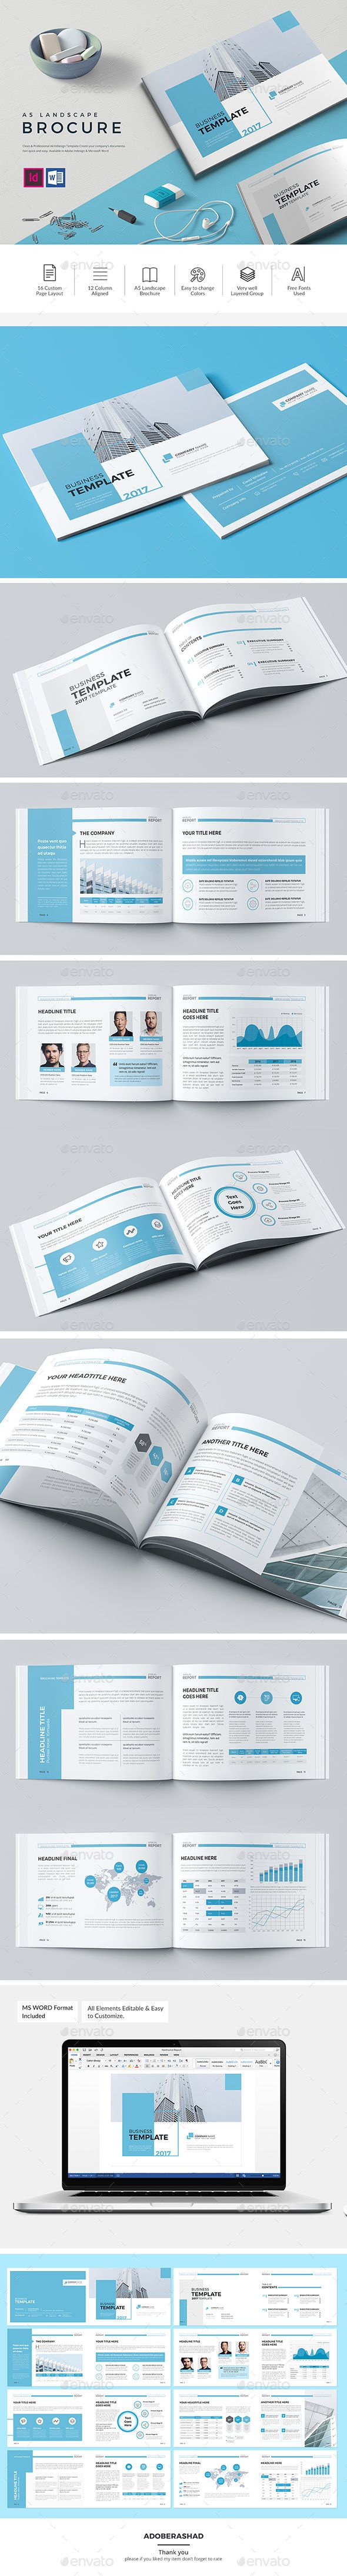 The Blue Landscape Brochure — InDesign INDD #brand #professional ...